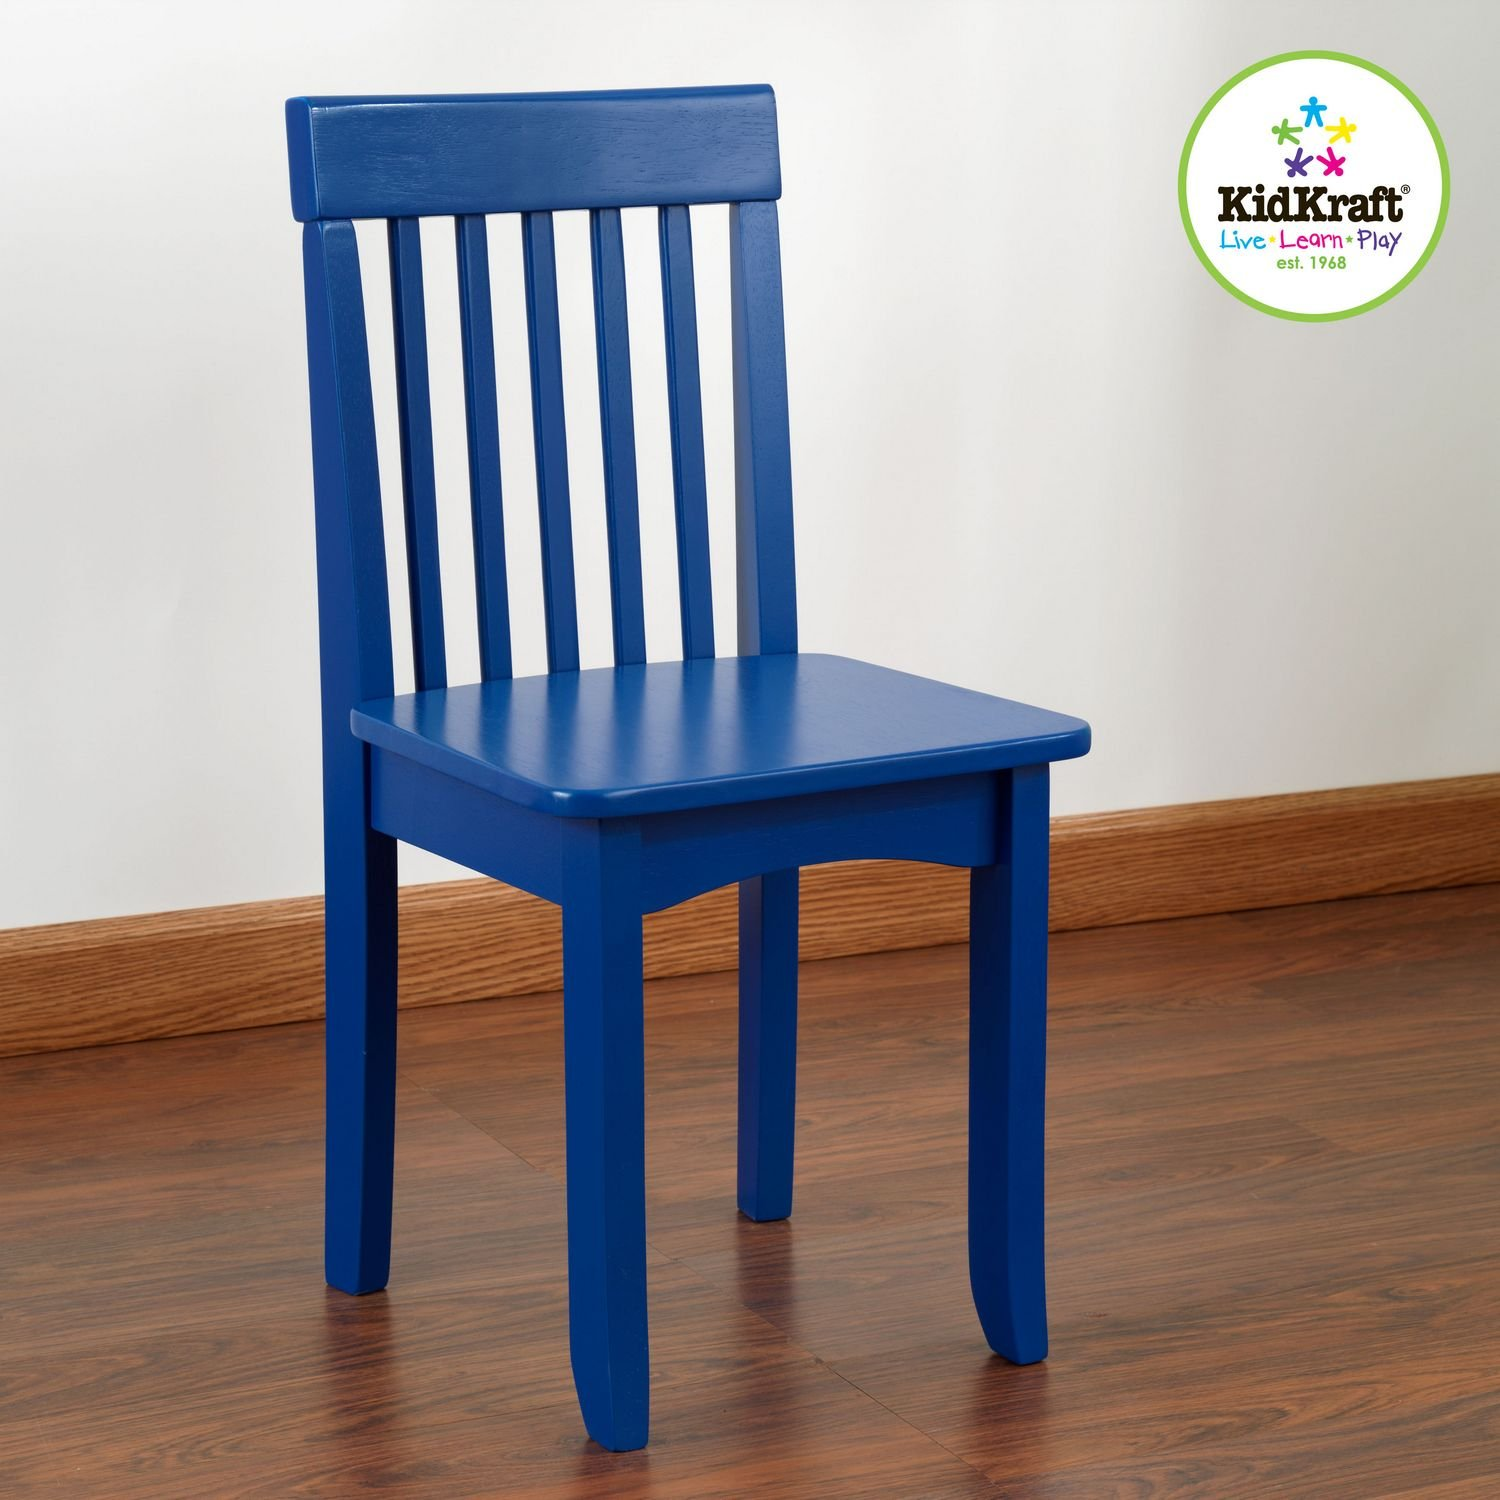 KidKraft Avalon Chair-Blue 16603